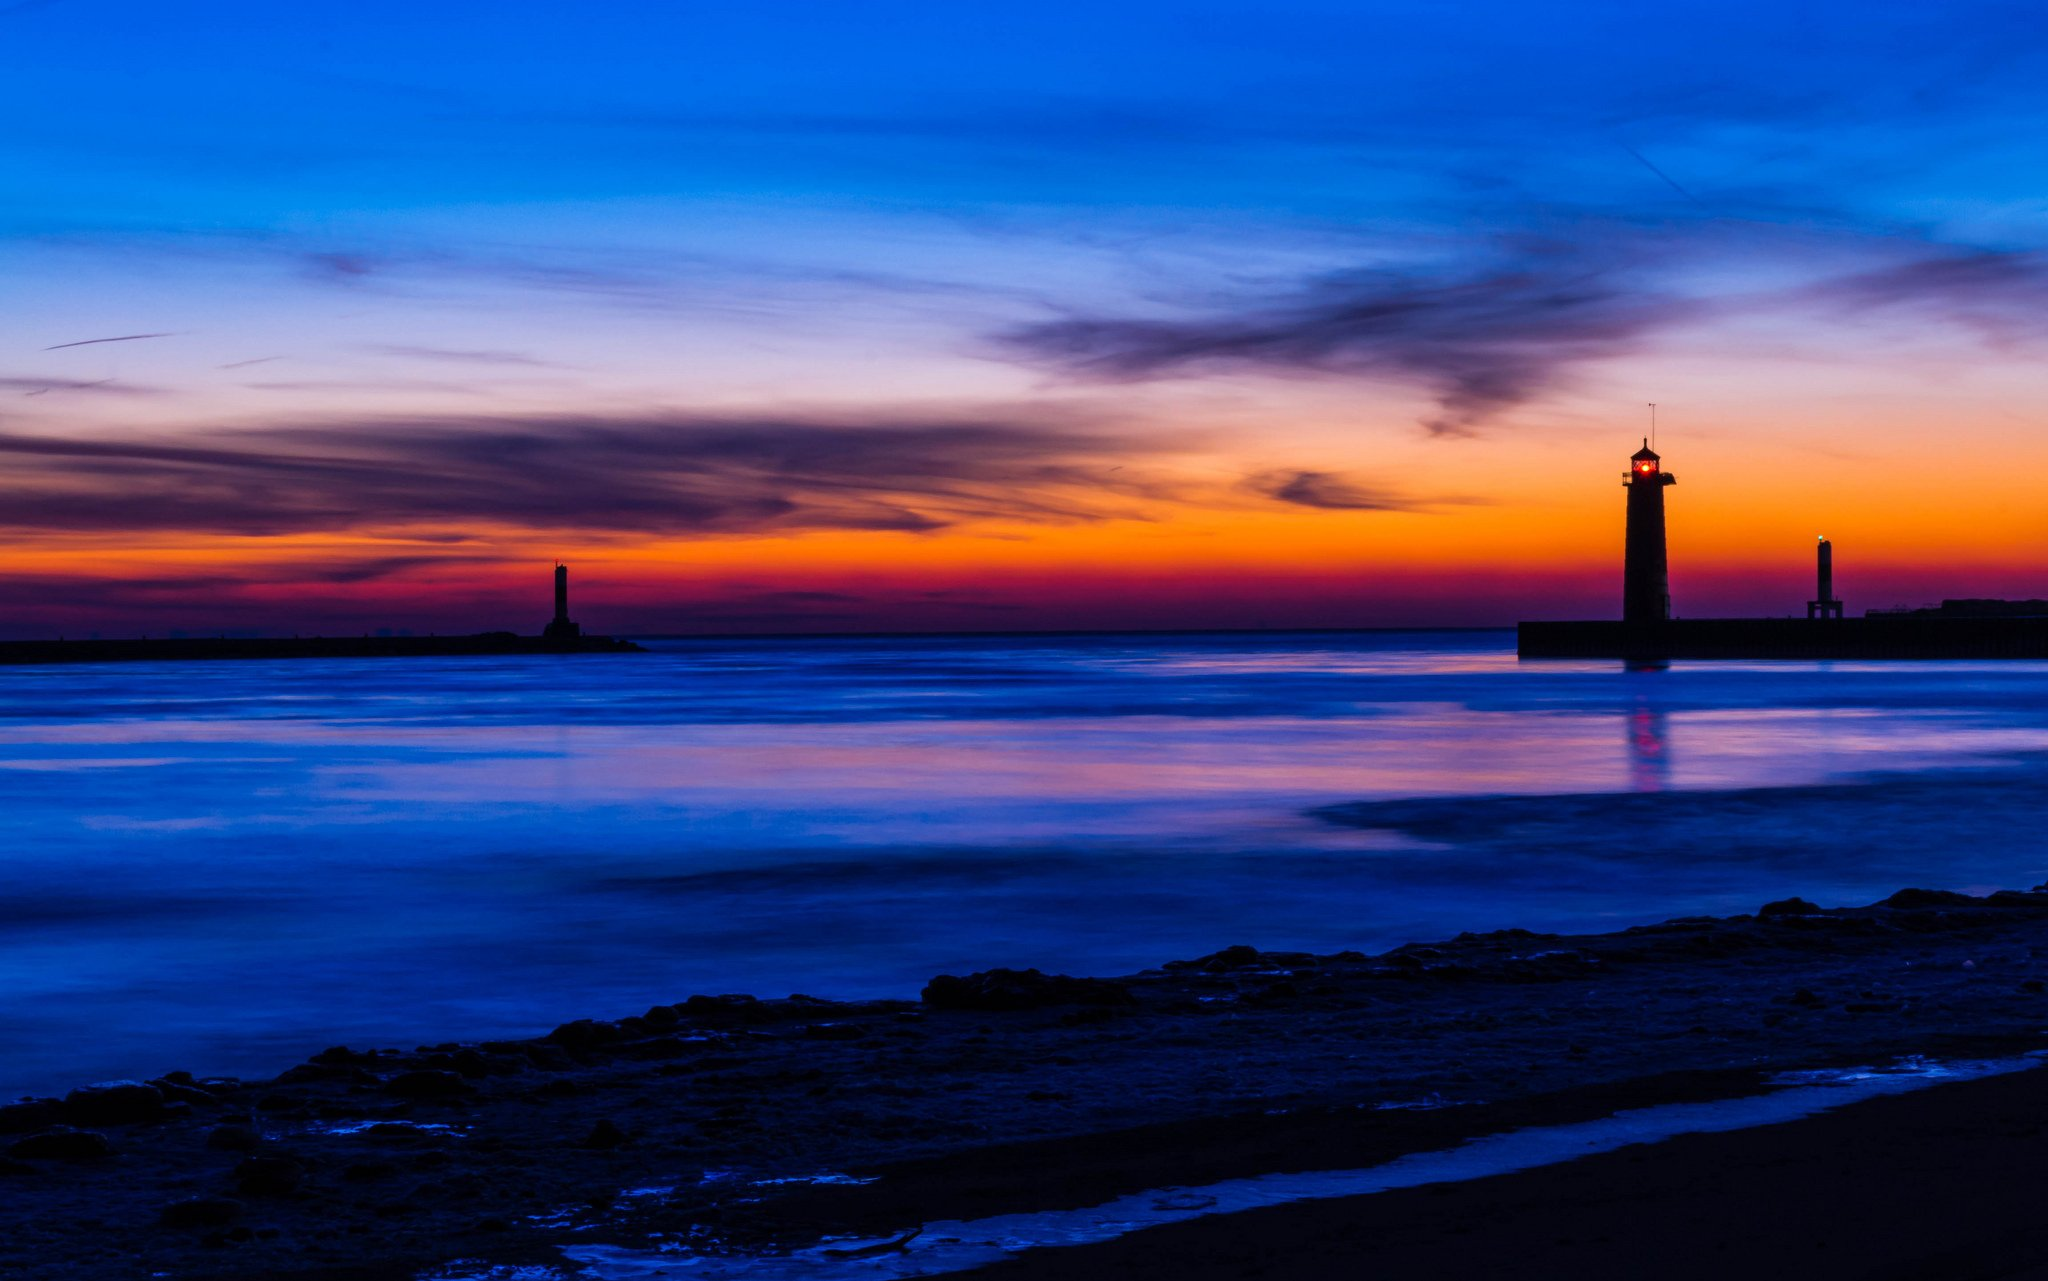 beach lighthouse night orange sunset blue sky clouds wallpapers 2048x1281